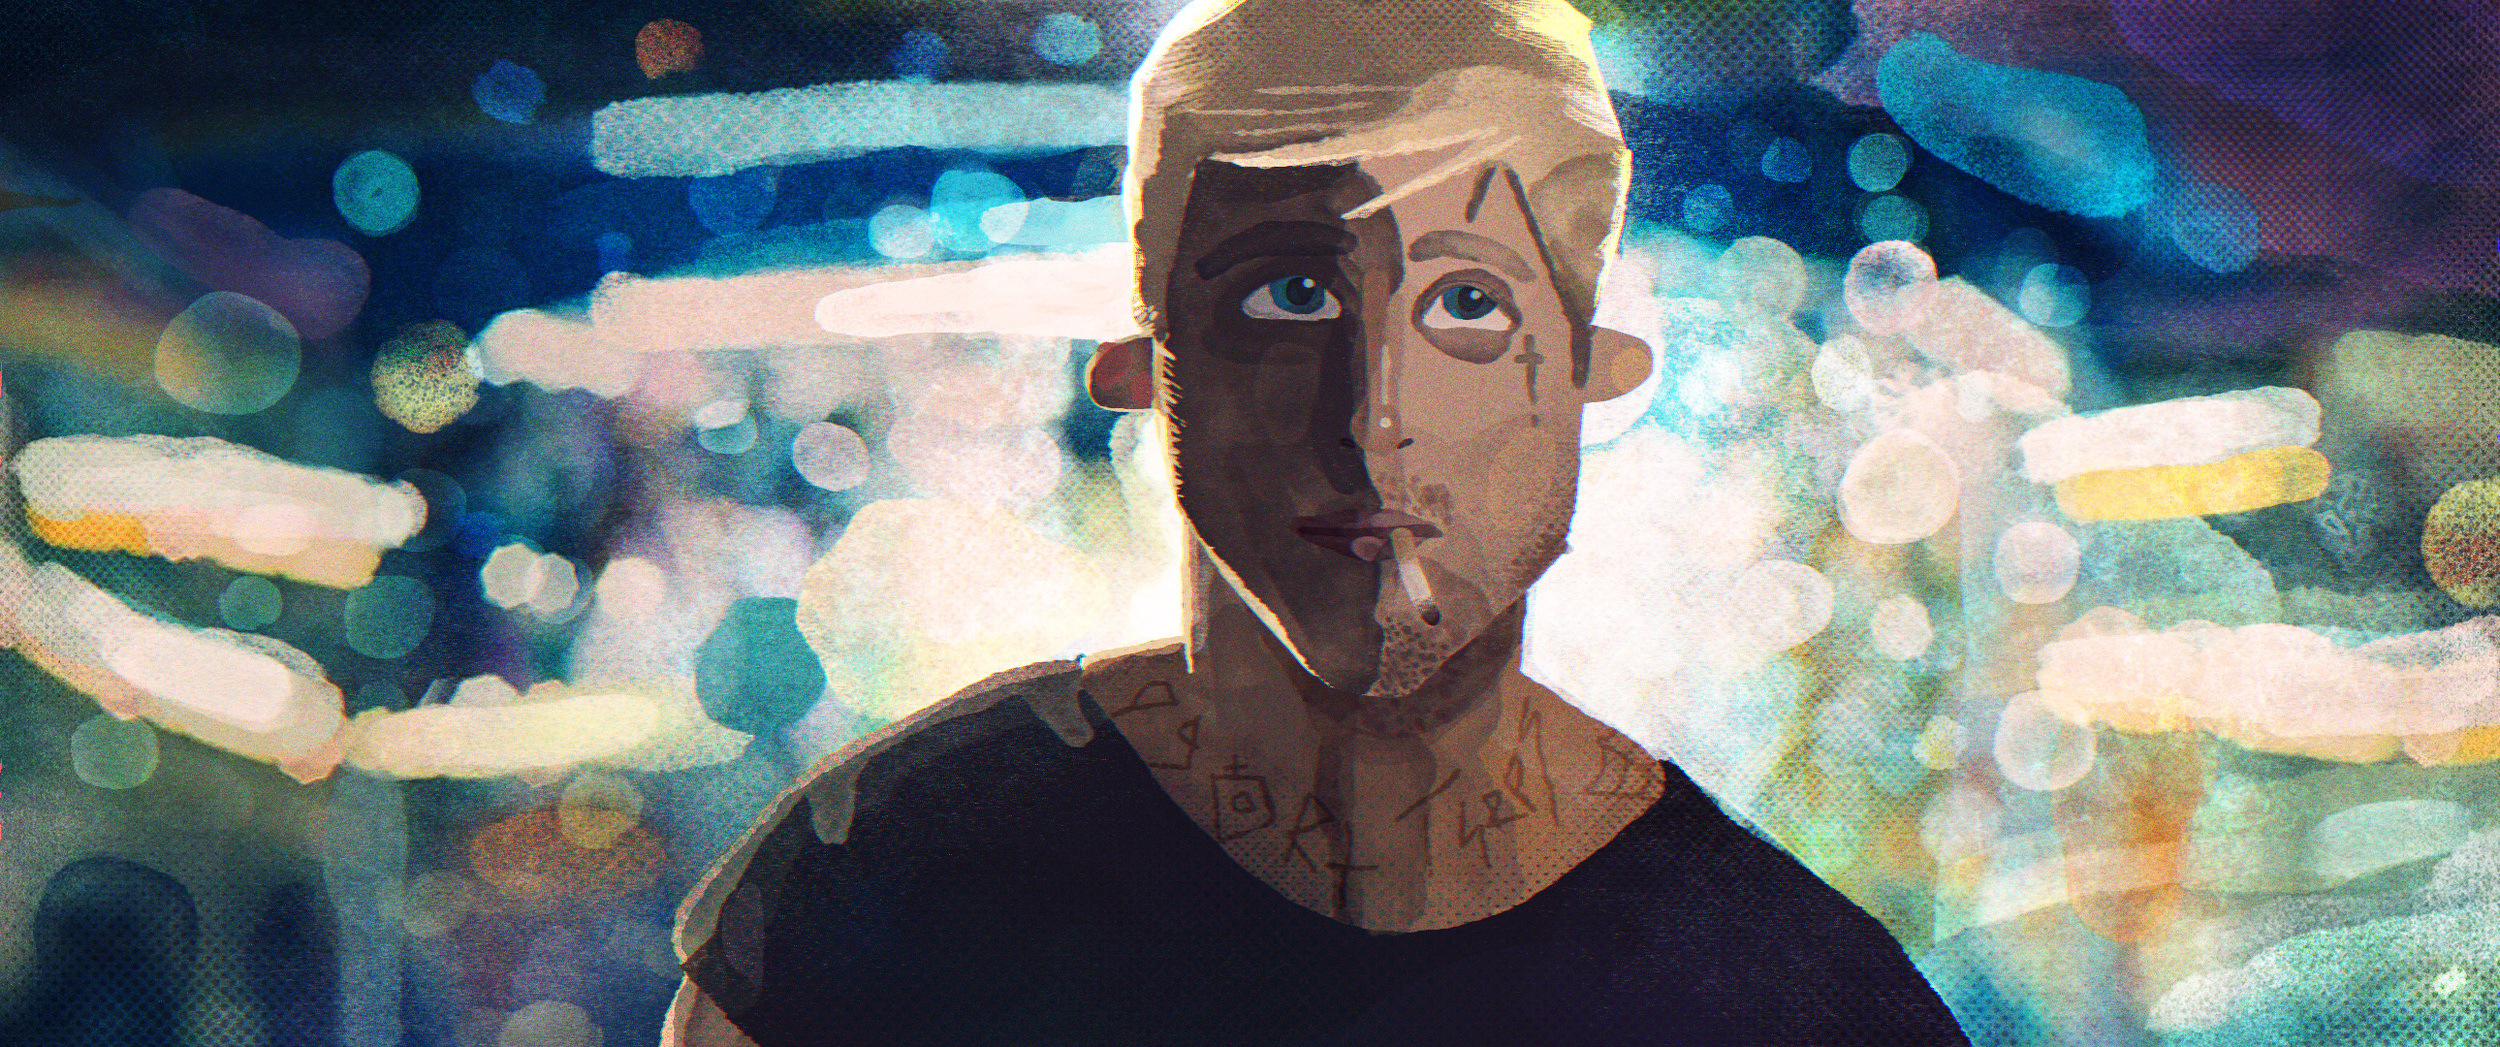 I loved the Place Beyond the Pines so much that I had to draw a scene from it.